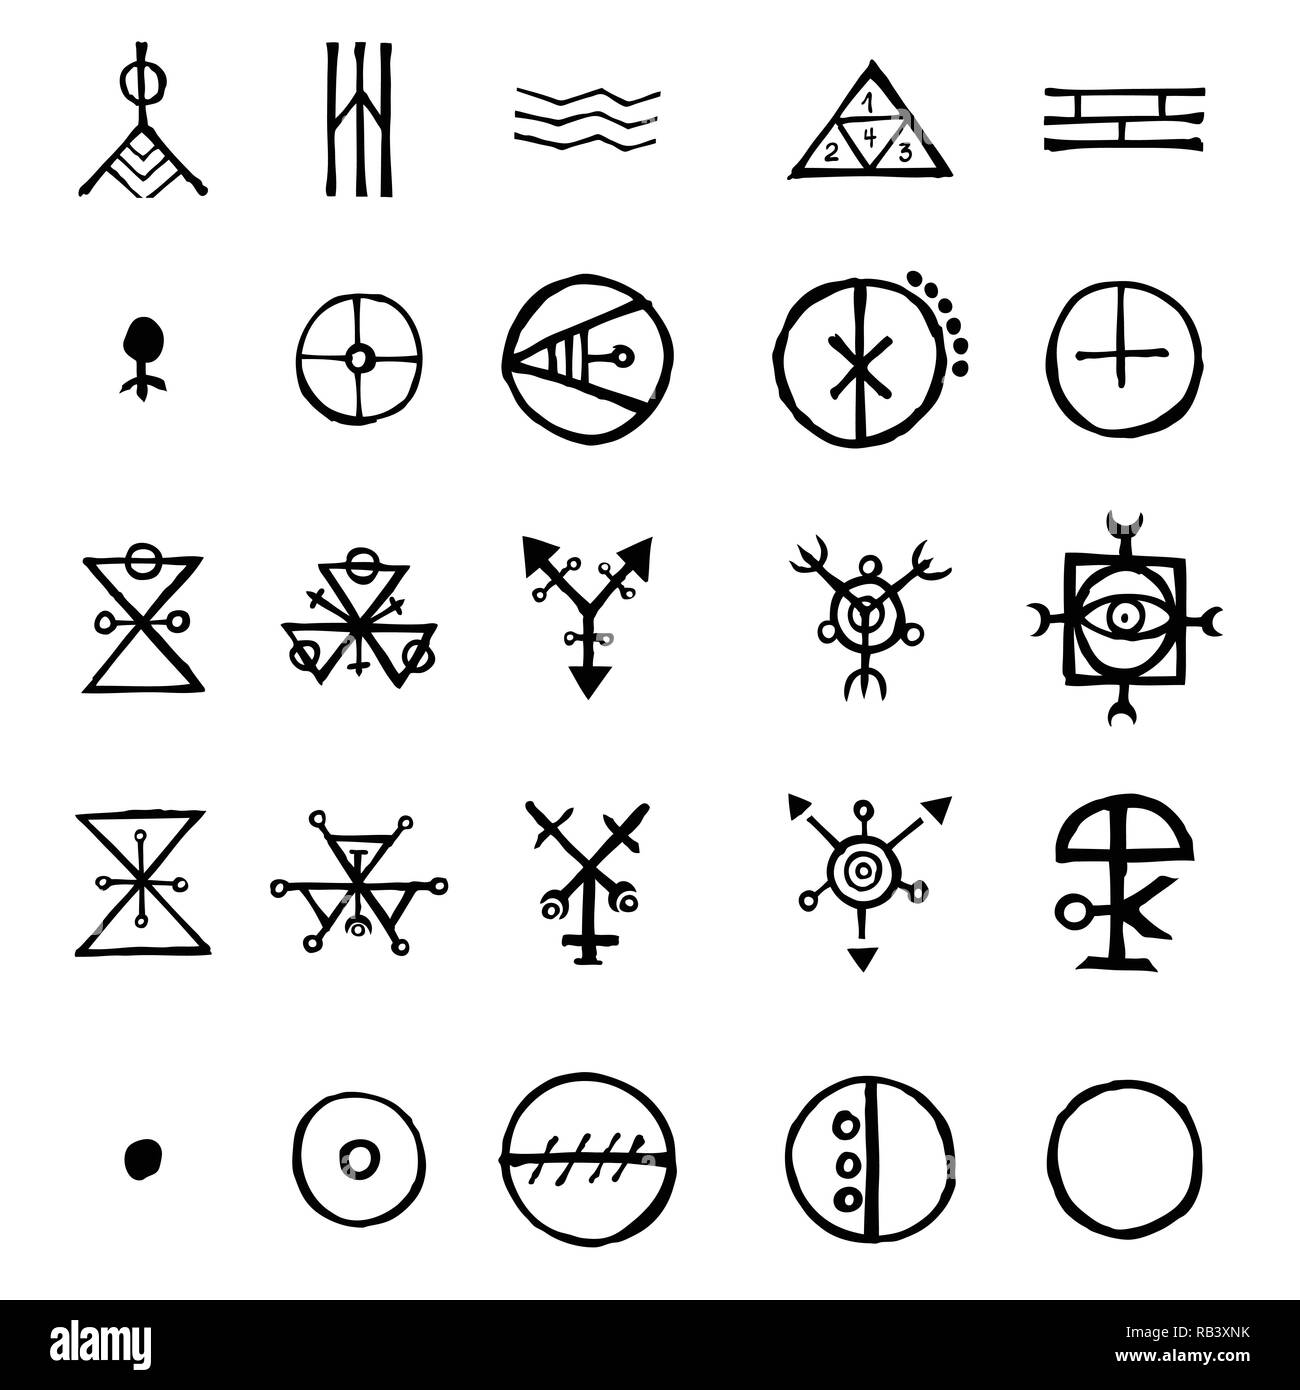 Set of alchemical symbols isolated on white background. Hand drawn and written elements for signs design. Inspiration by mystical, esoteric, occult th - Stock Image